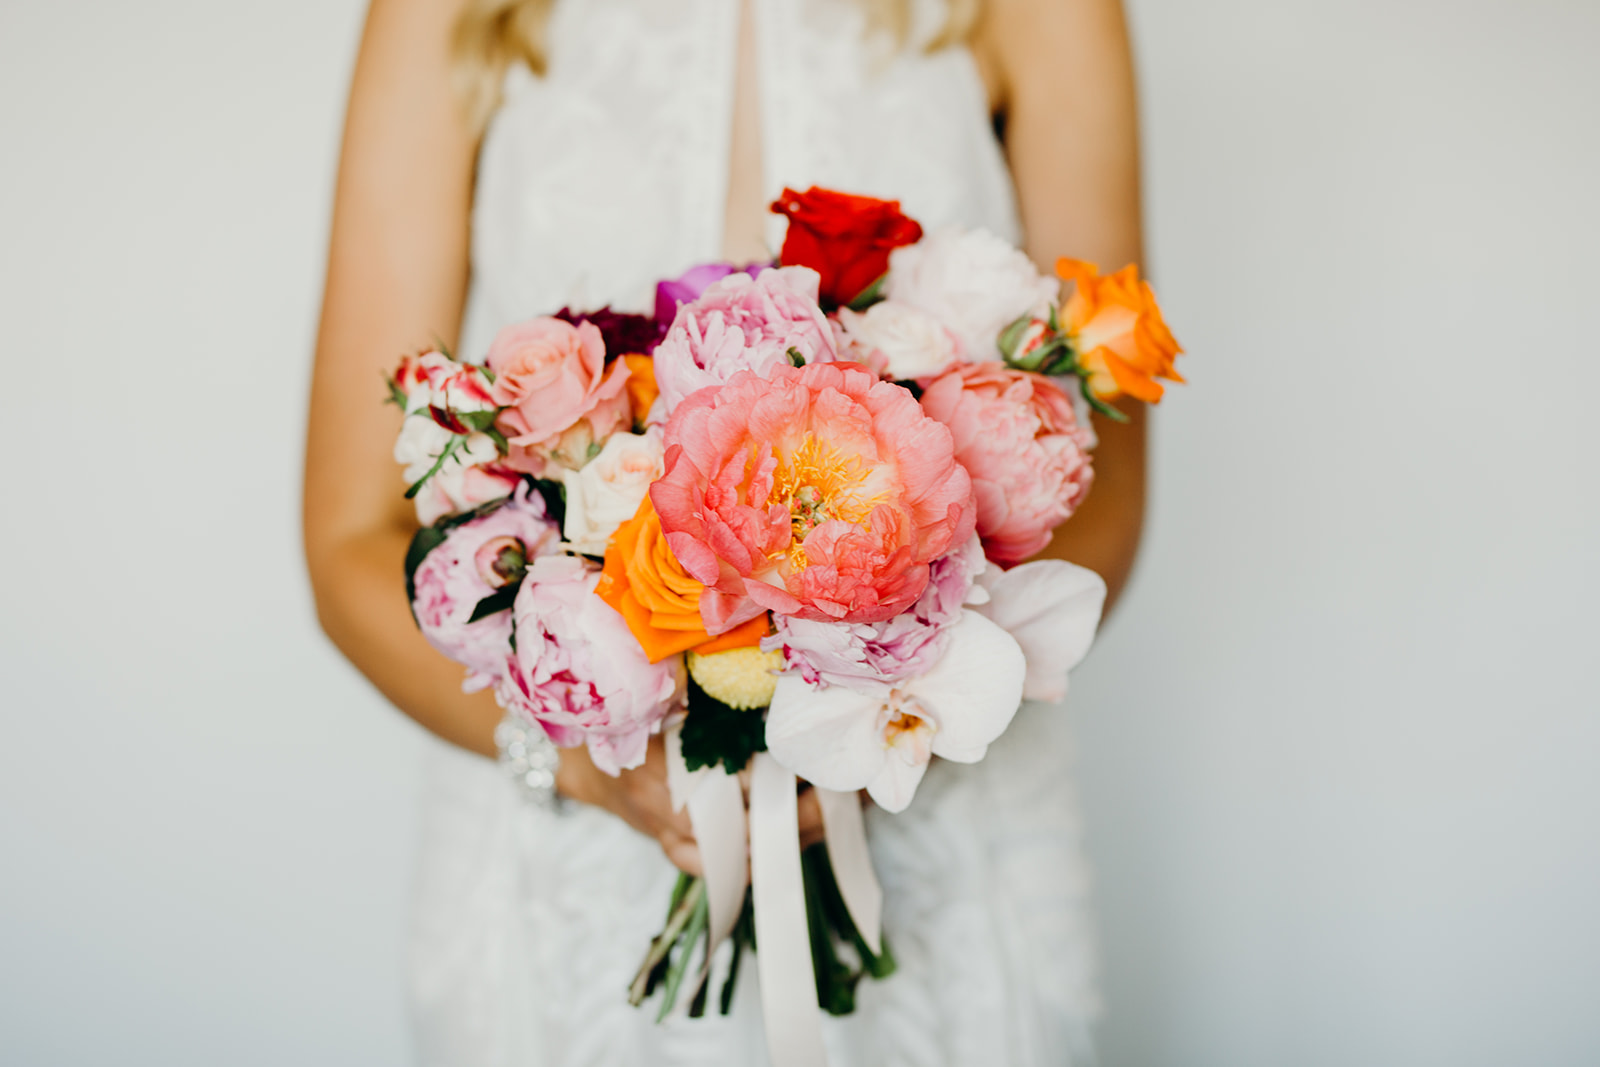 The bouquet by The Flower Drum & the palette I was given for the cake. Image by Folk & Follow